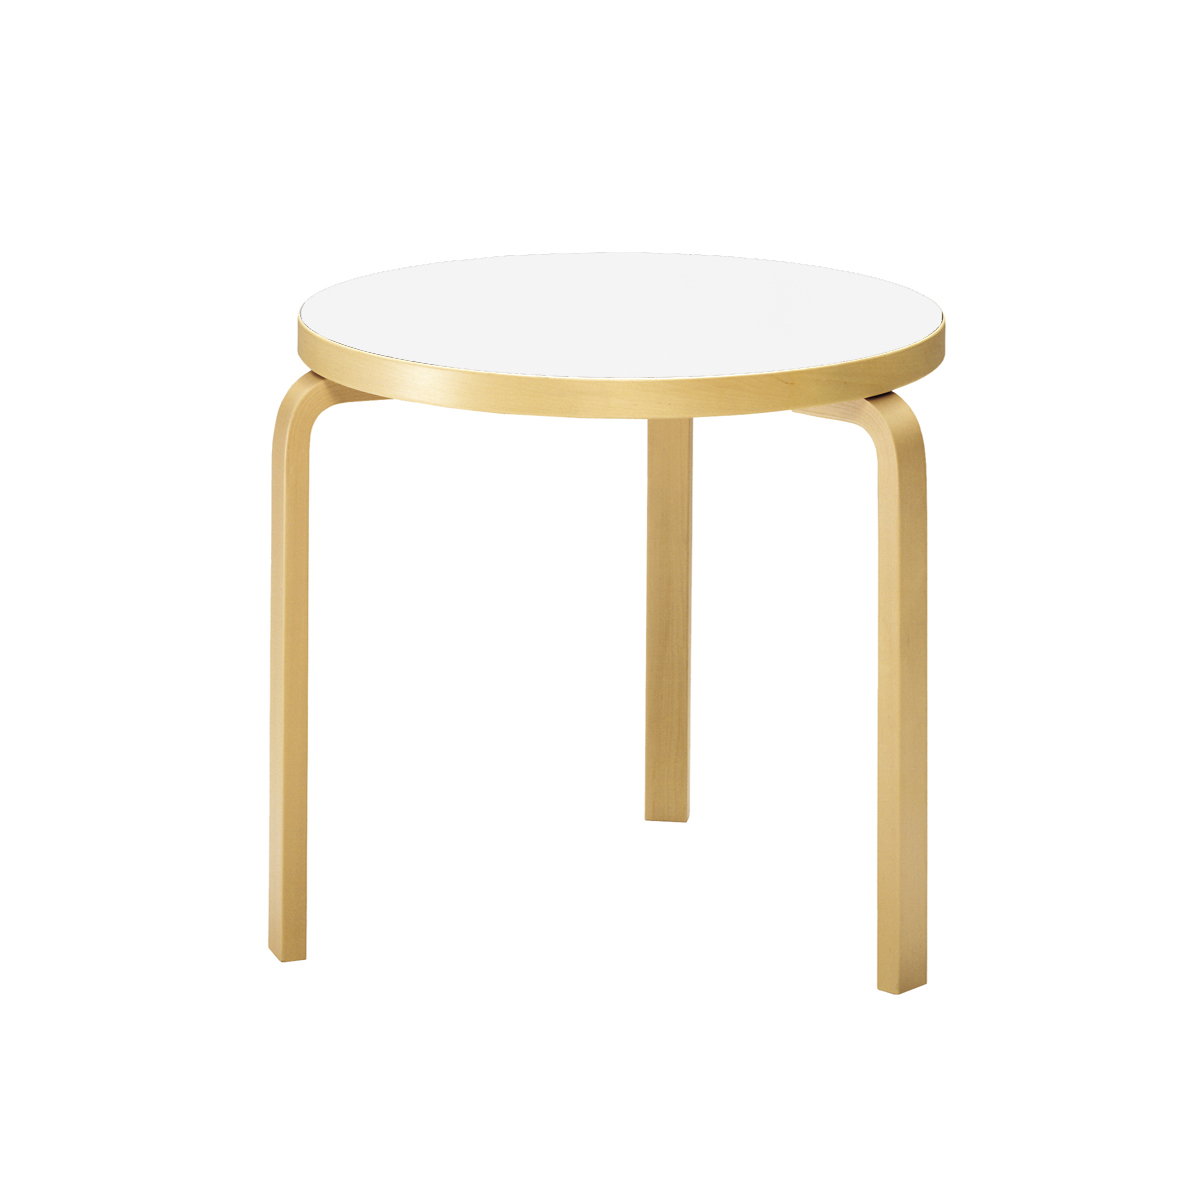 Artek Alvar Aalto Round Three Legged Table 90b Dining And Conference Tables